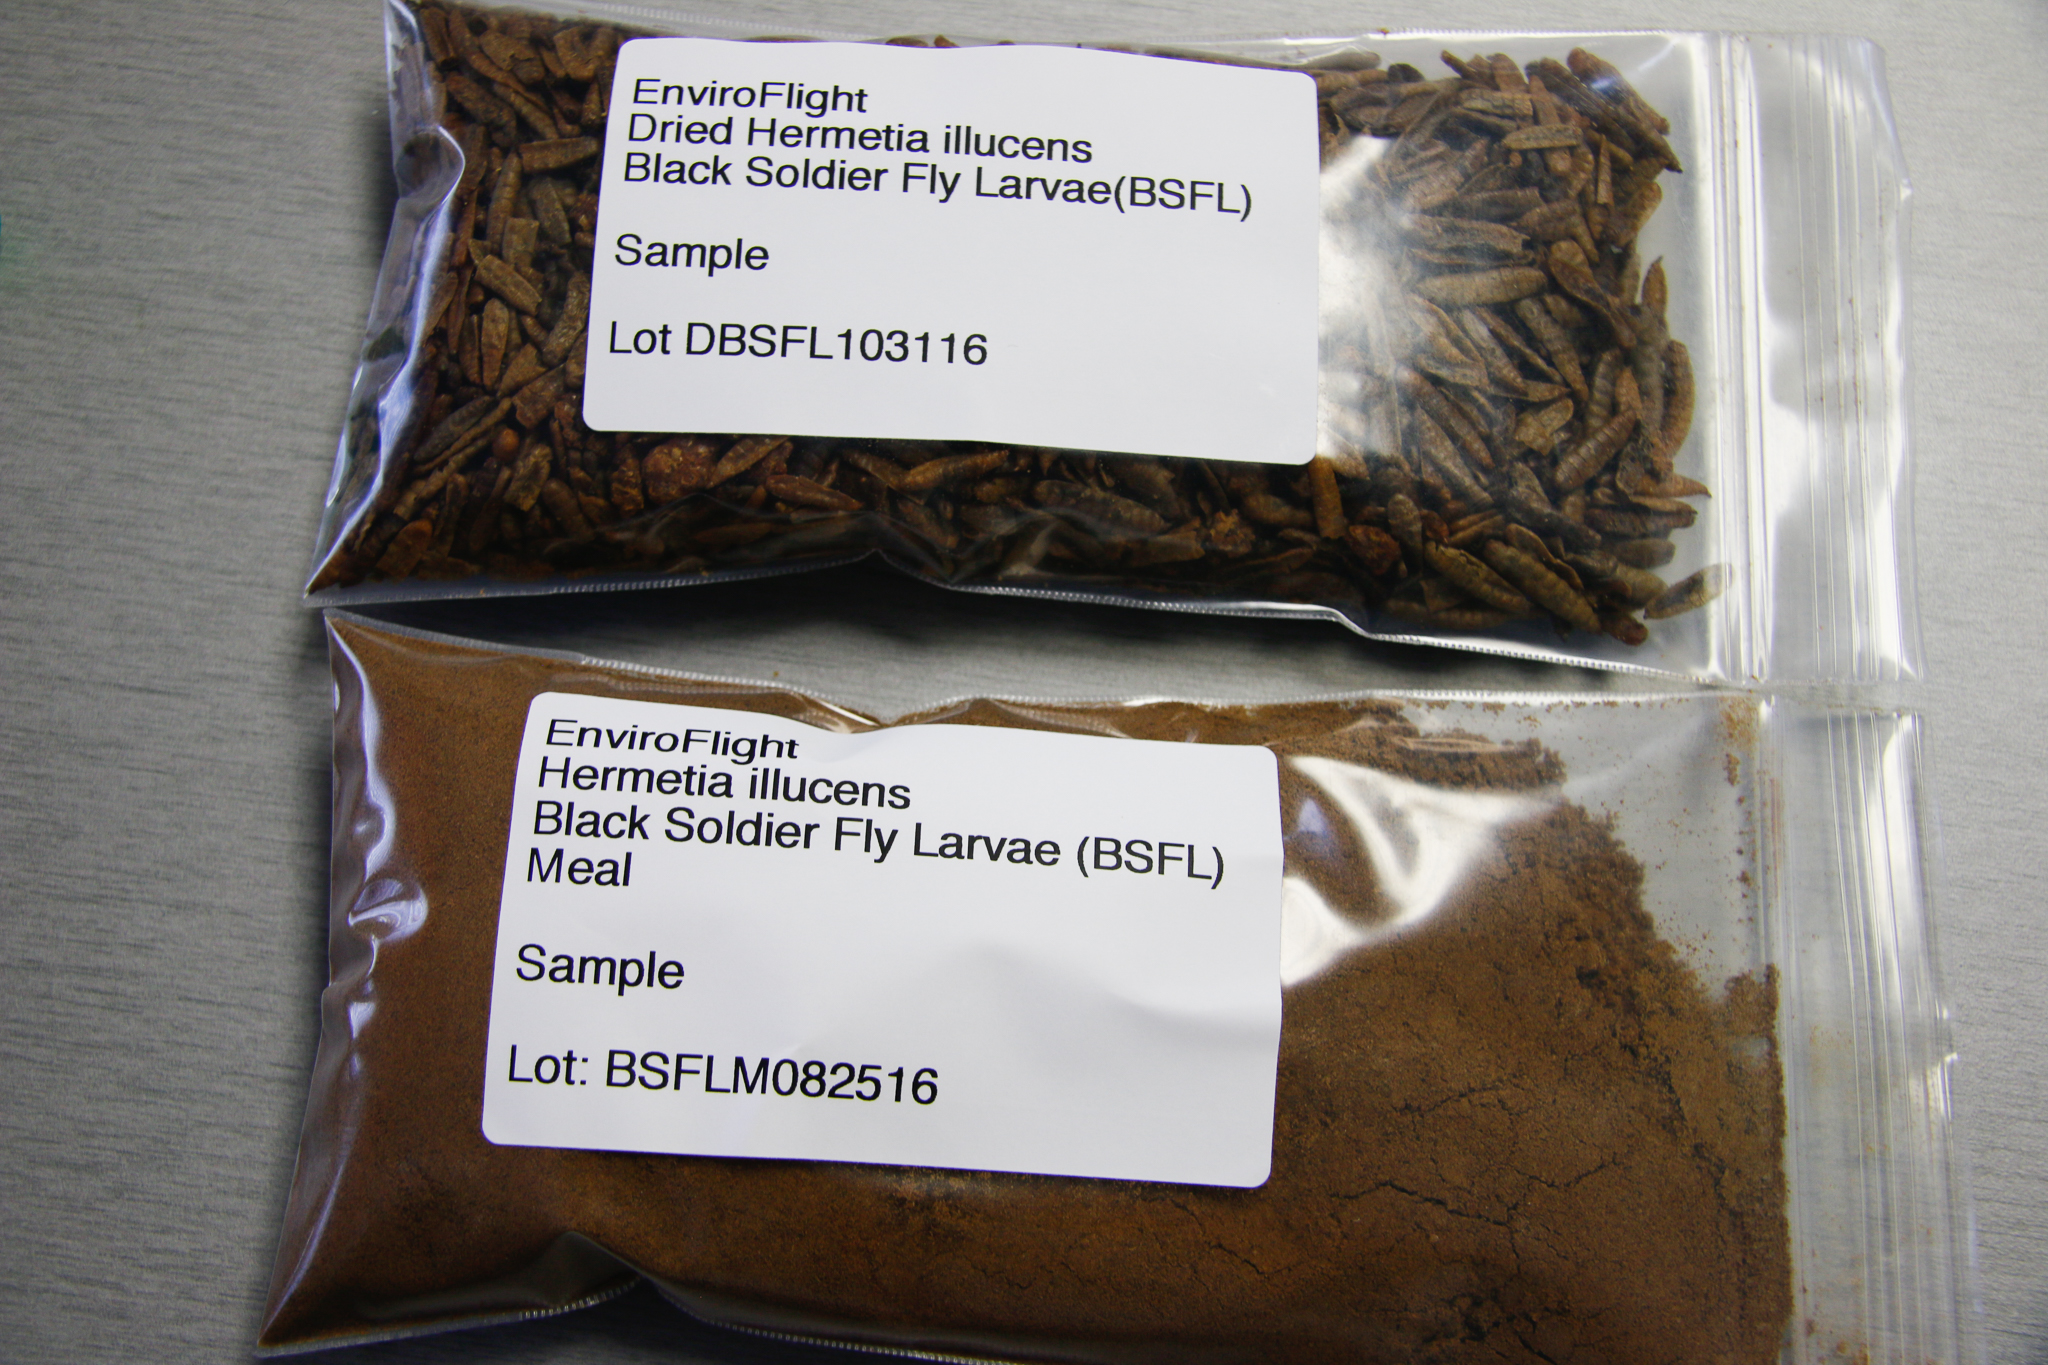 EnviroFlight currently produces two products: dried whole larvae and powdered larvae.